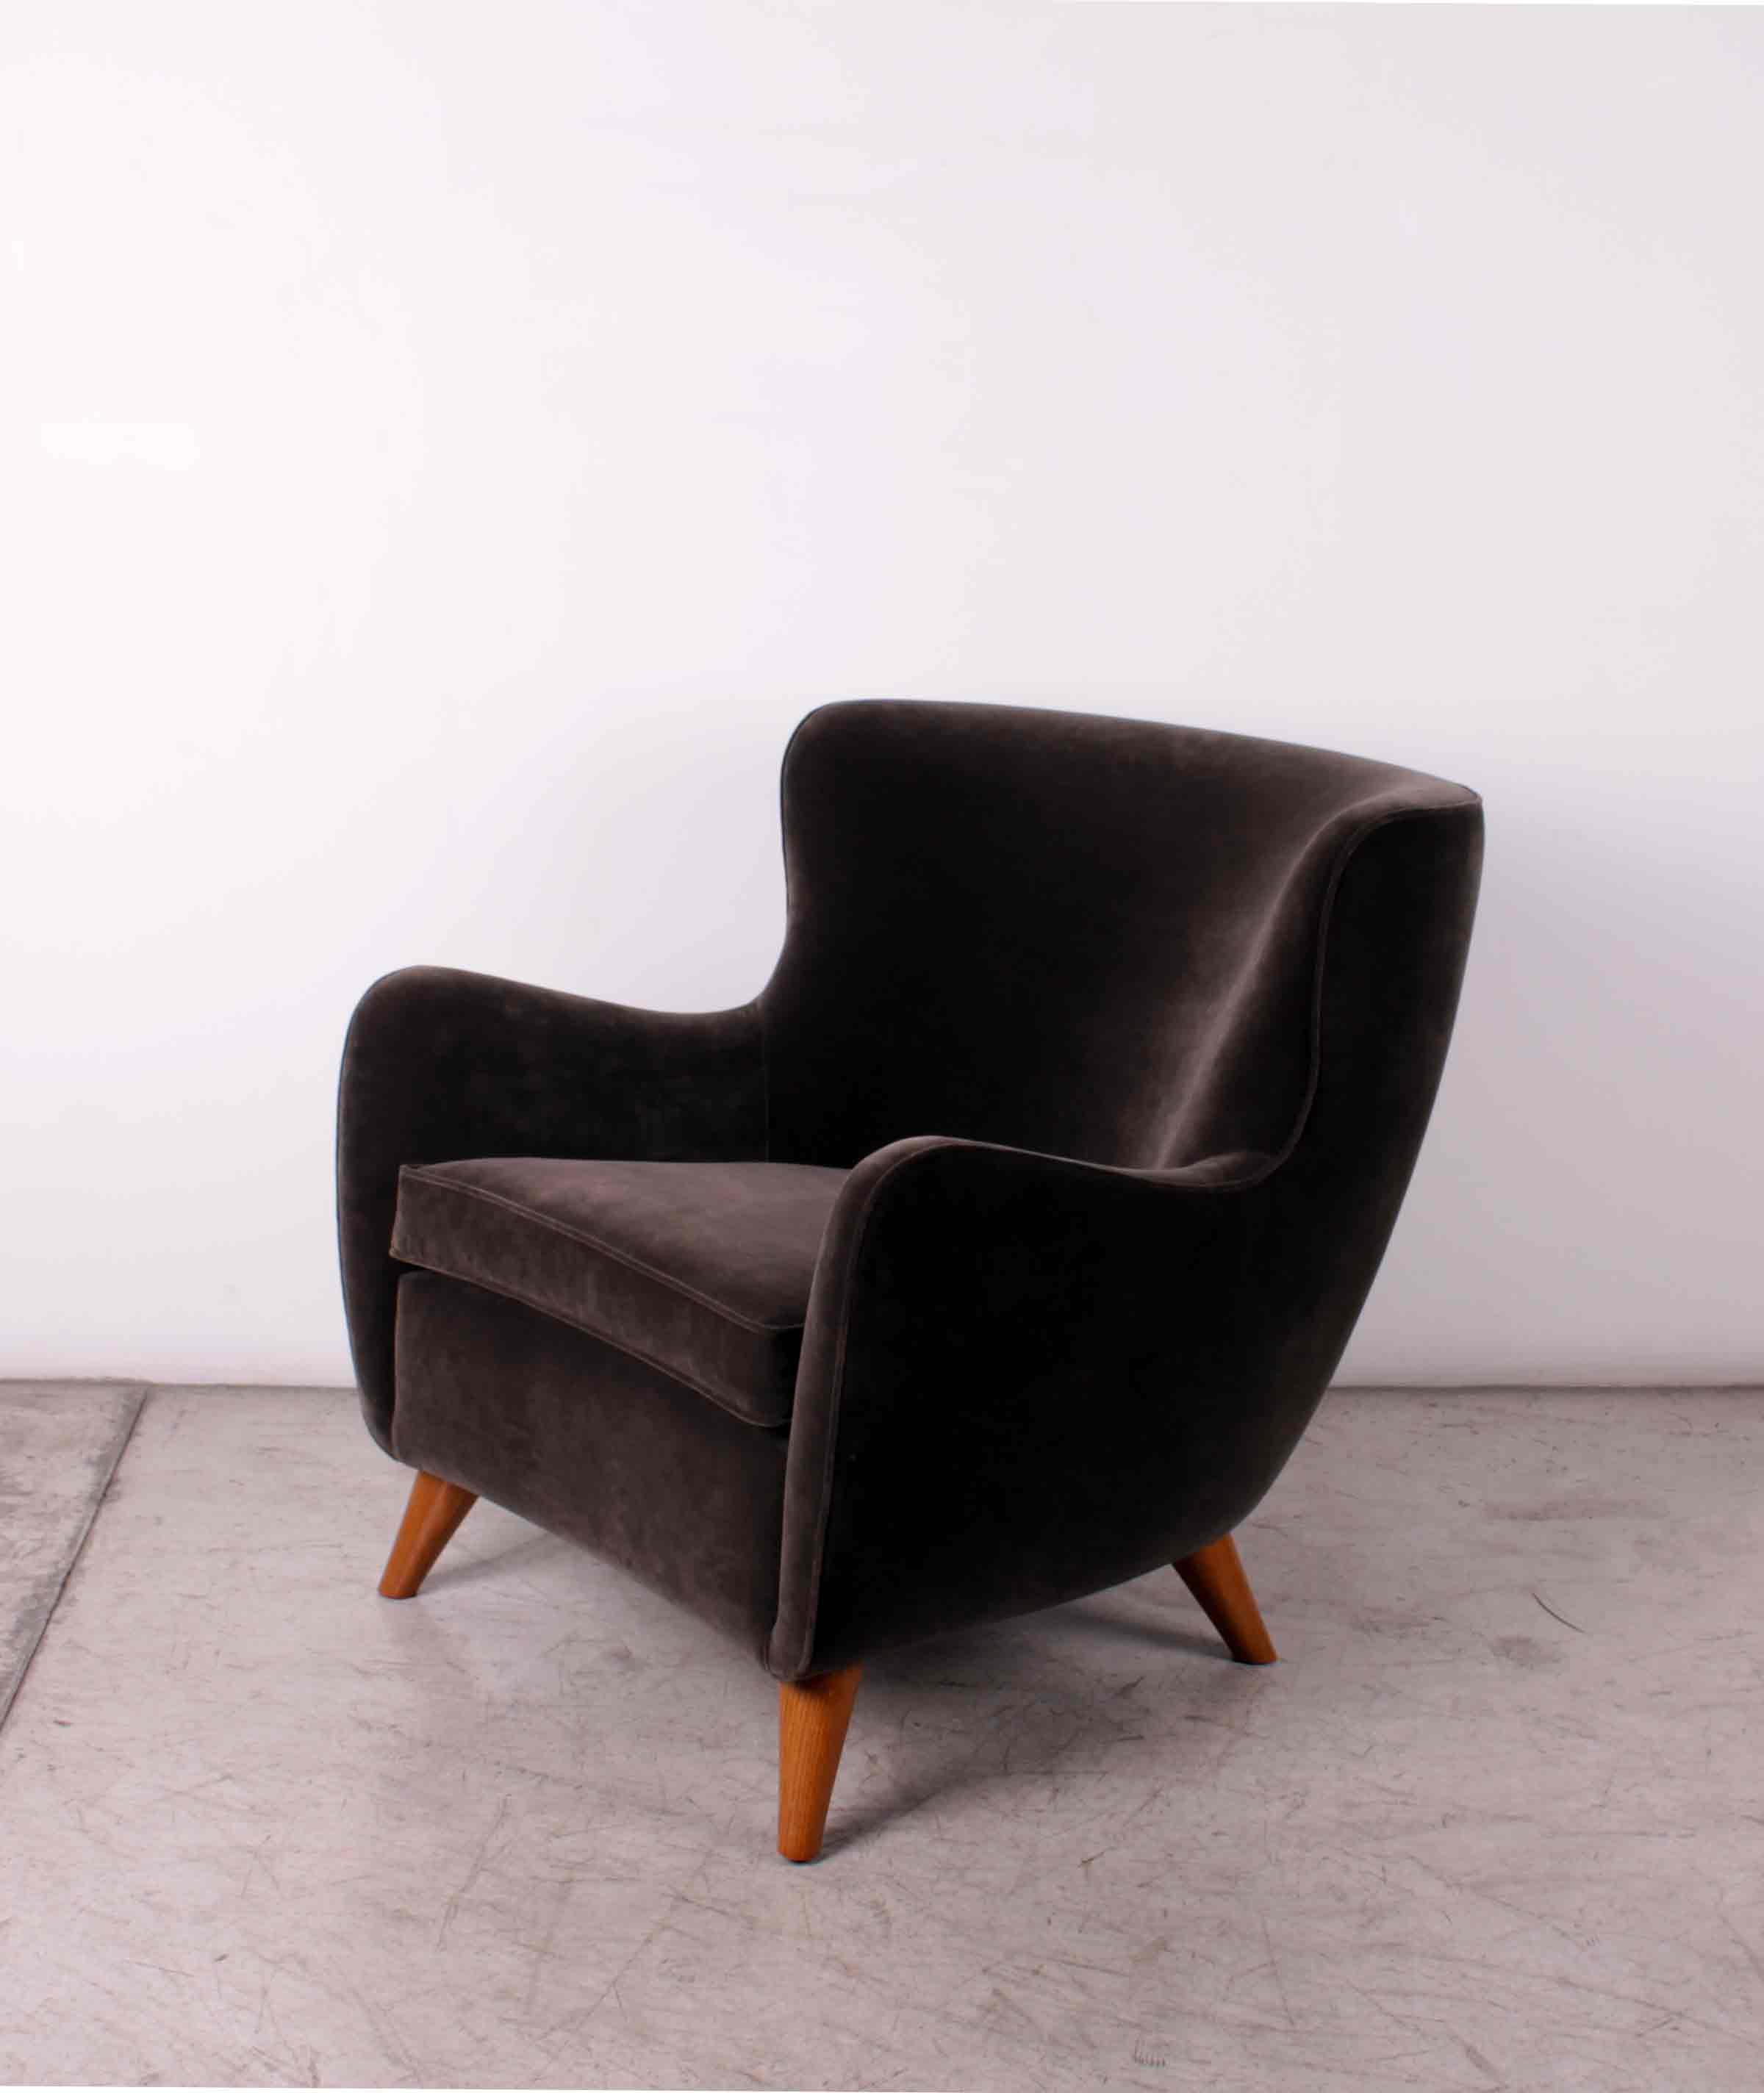 Pair of brown armchairs, design XXe Siècle, oak wood and velvet, H 80 W 78 Seat depth 54 cm.